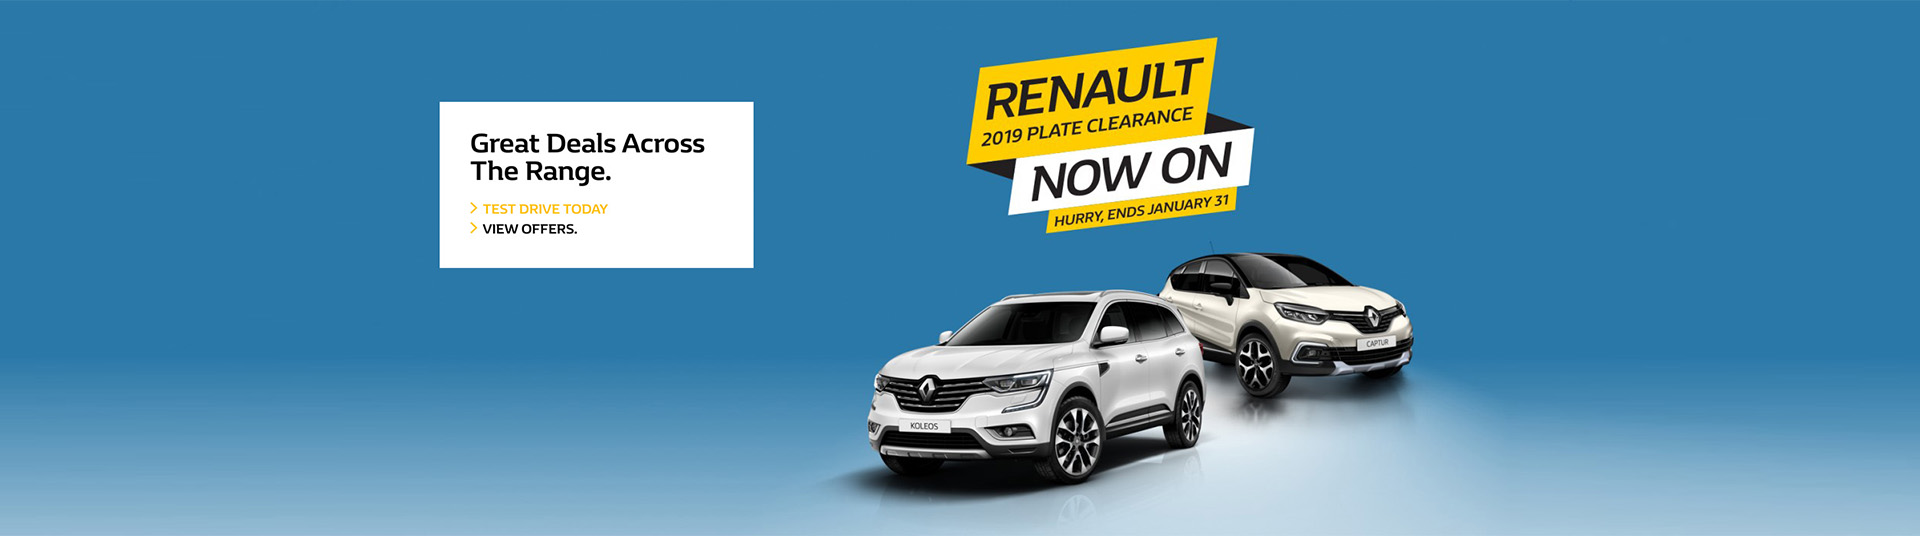 Renault Offers